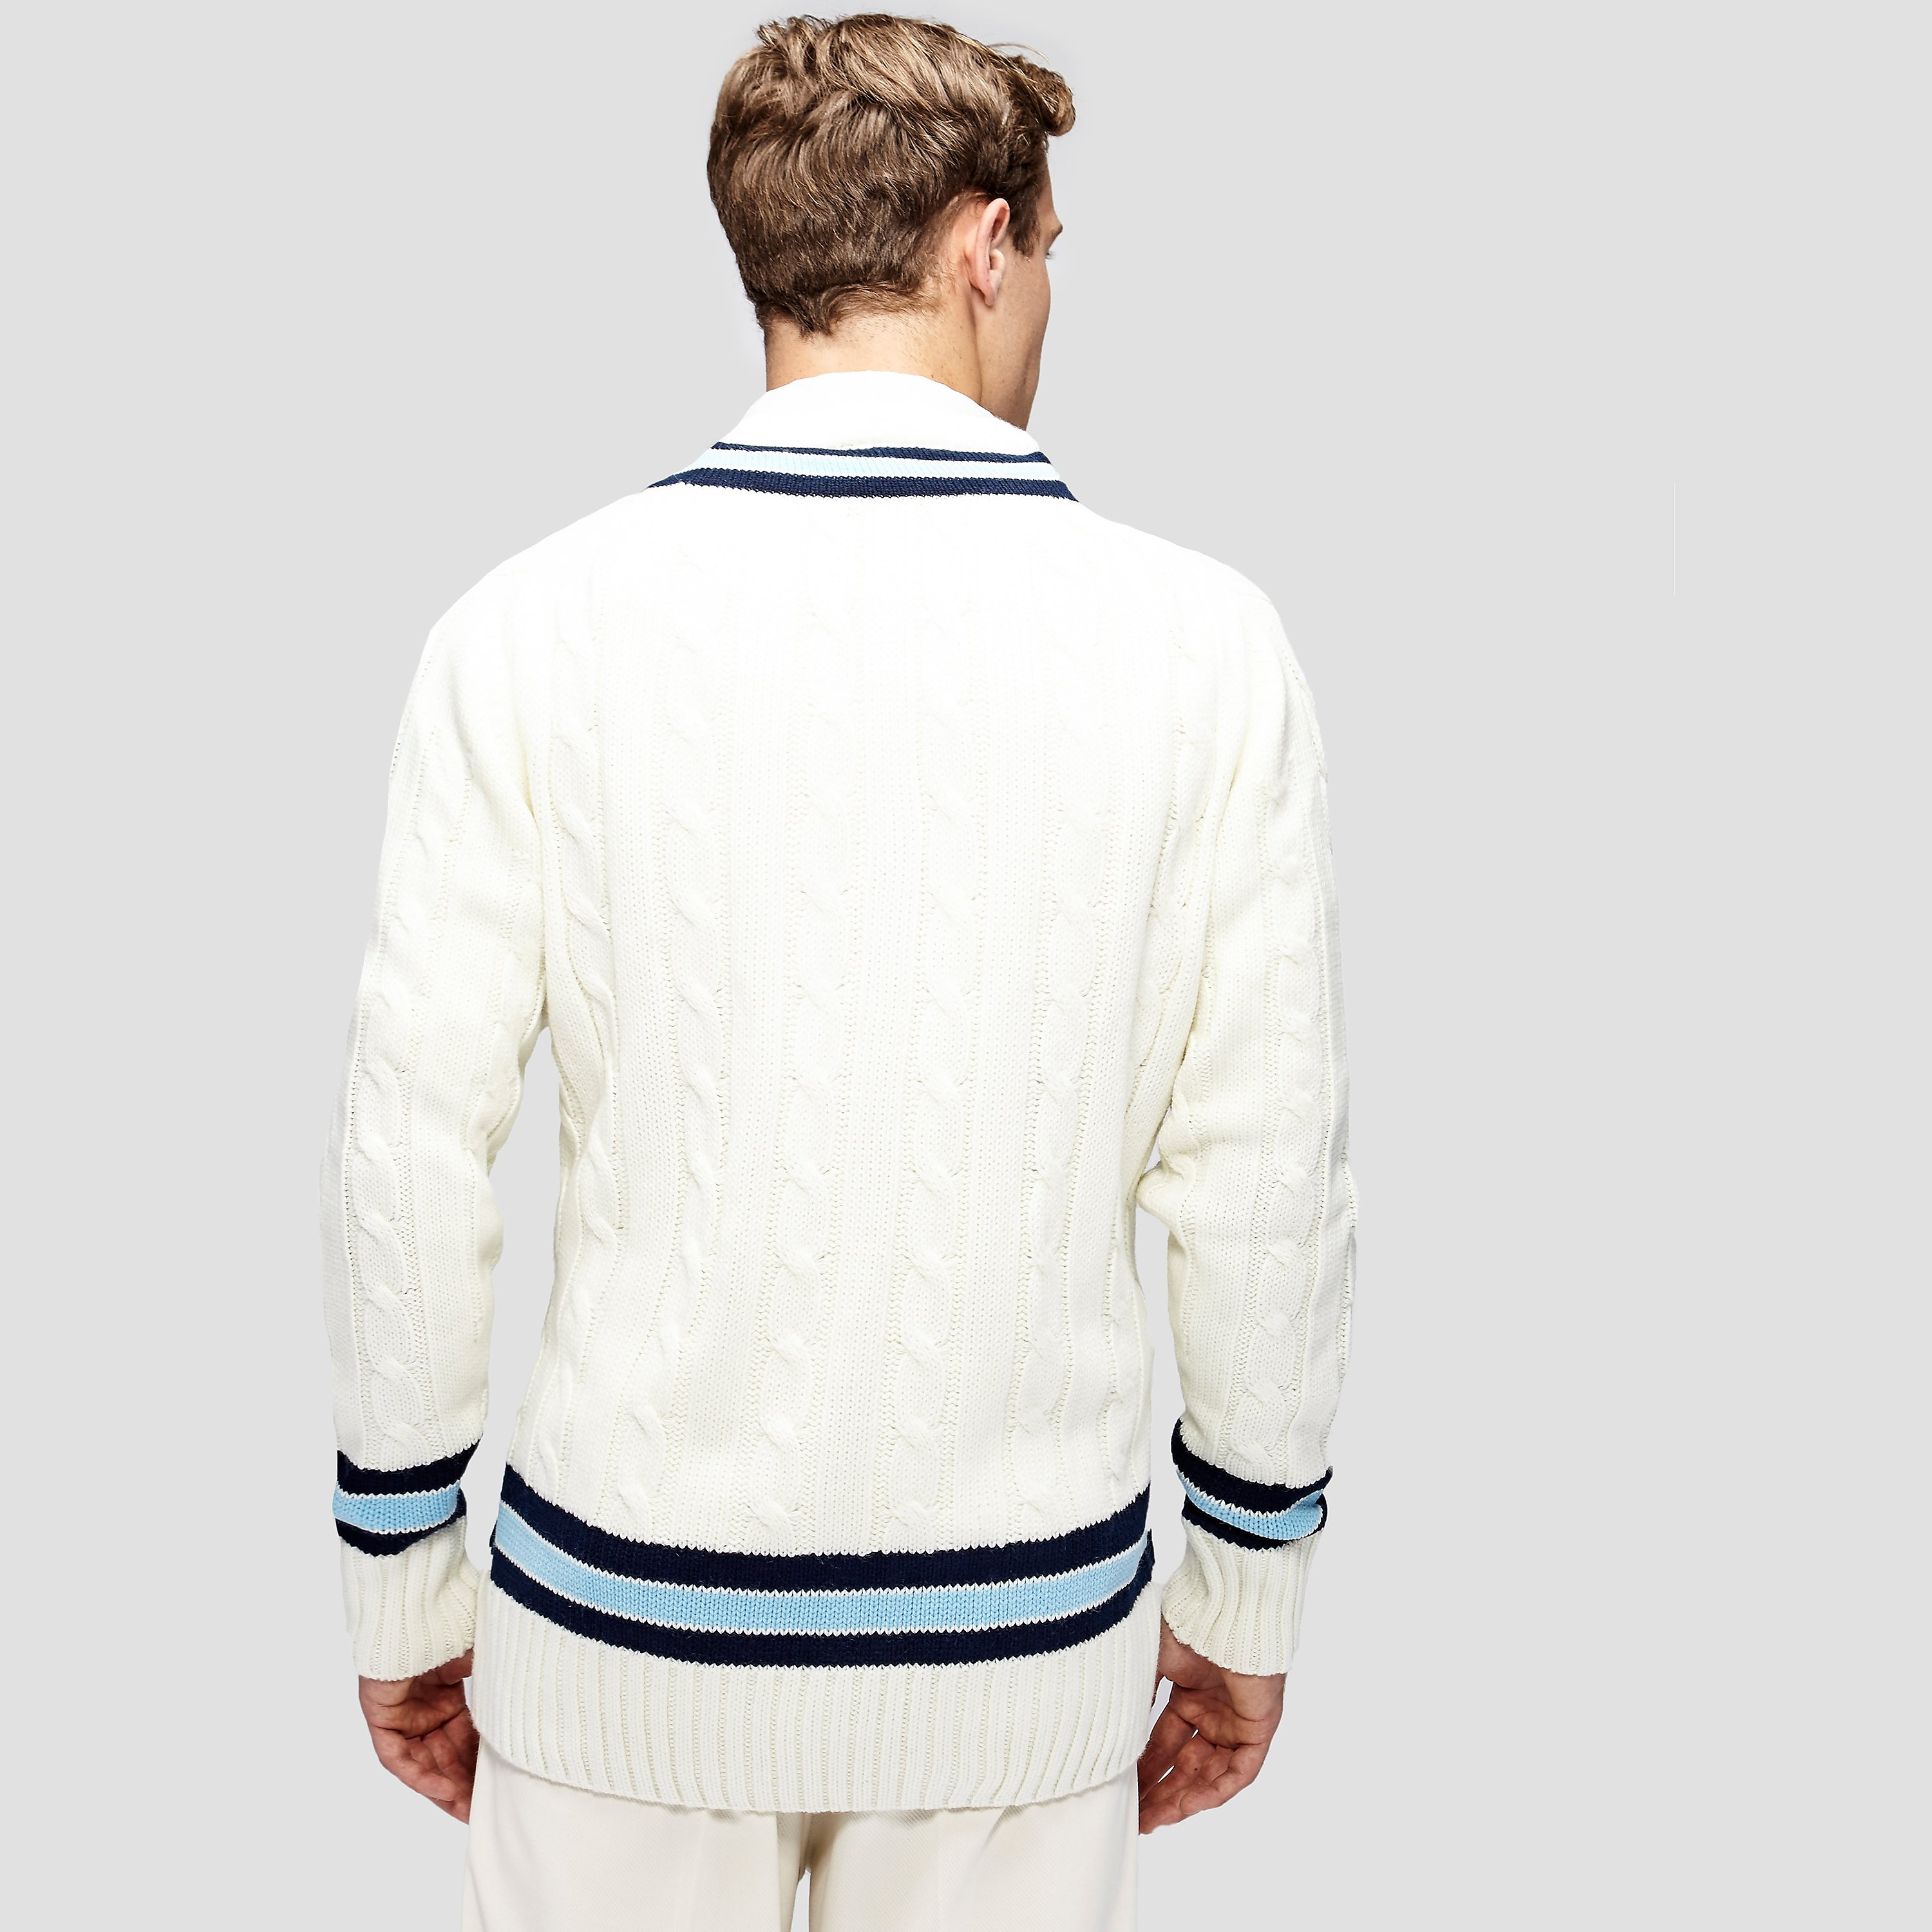 Gunn & Moore Sweater Trimmed With Long Sleeves